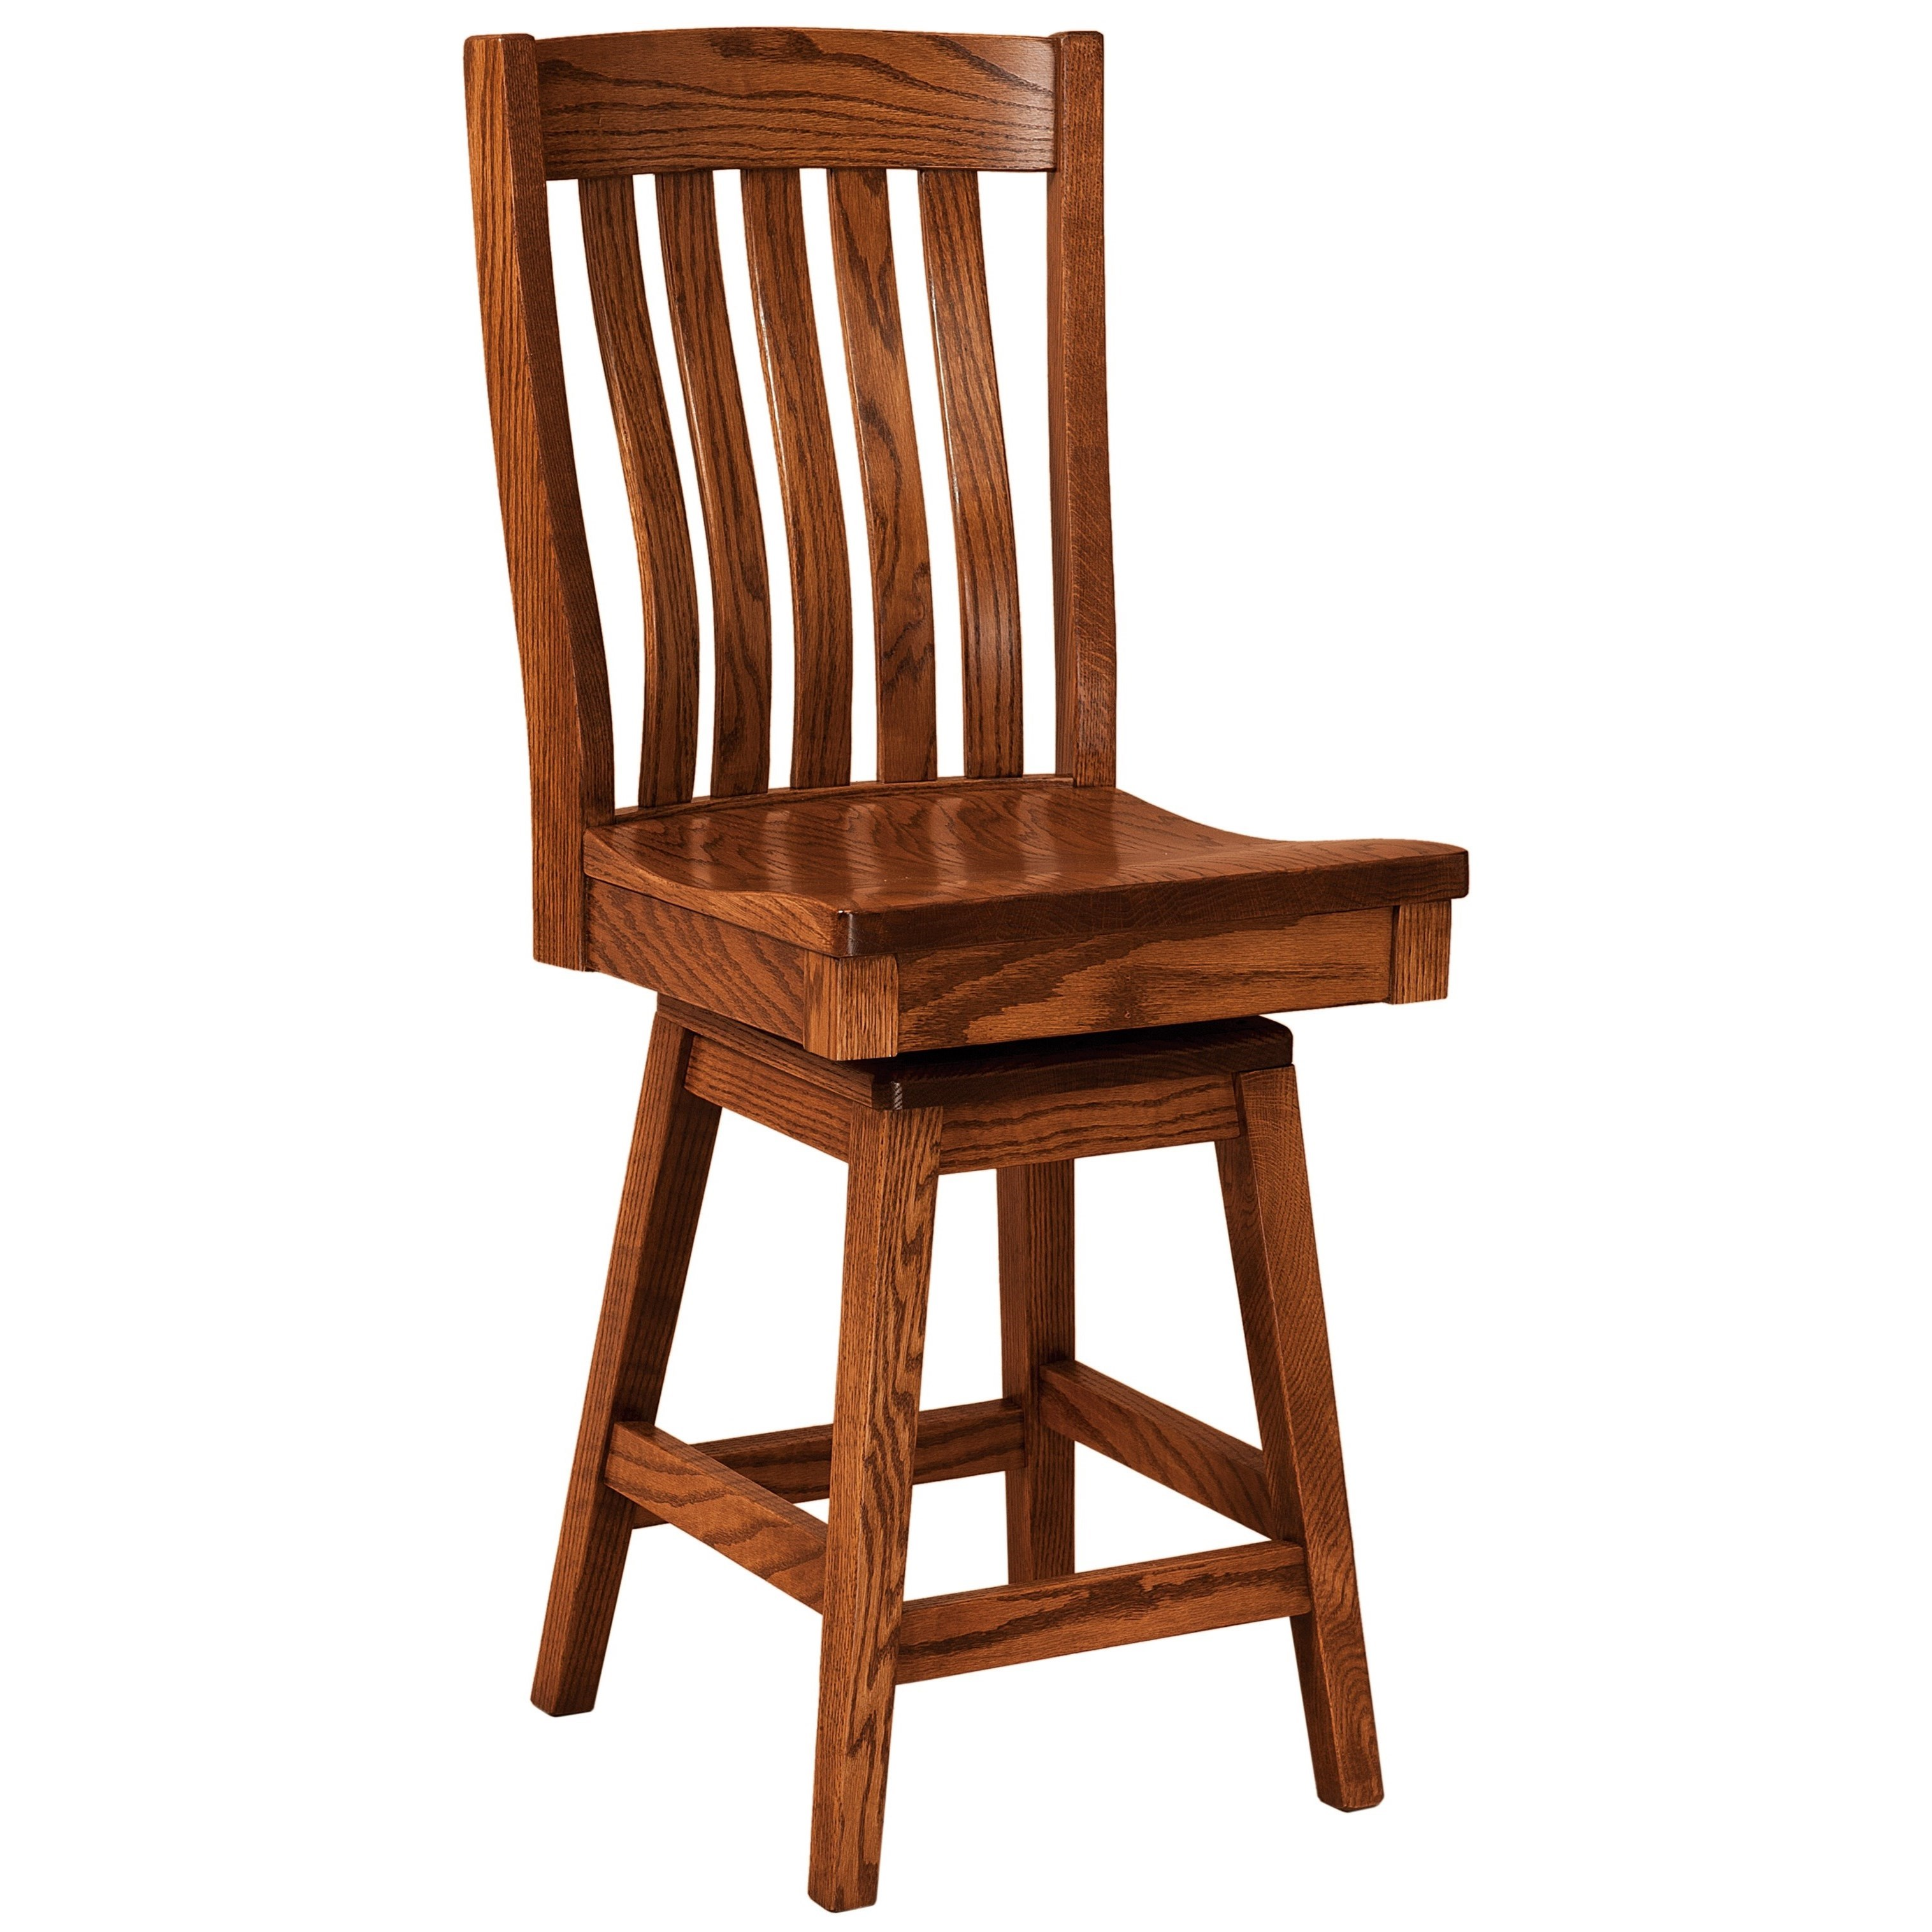 Houghton Swivel Bar Stool - Wood Seat by F&N Woodworking at Mueller Furniture